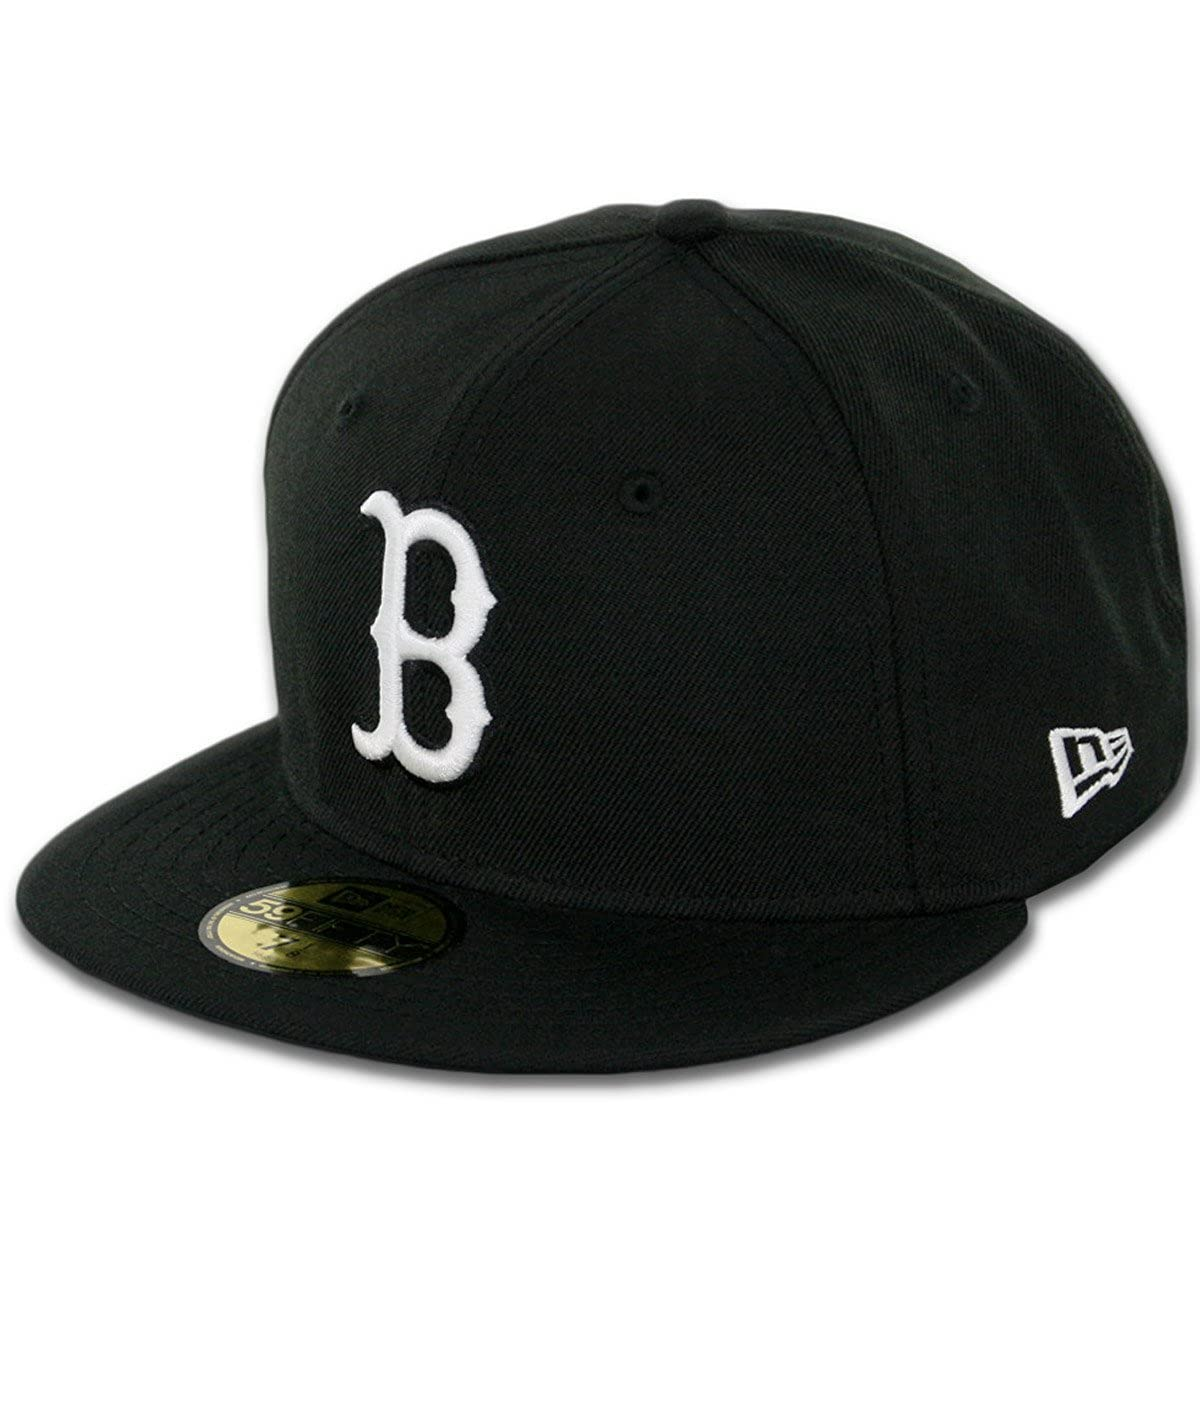 premium selection 32d8c 2634b Amazon.com  New Era 59Fifty Hat MLB Basic Boston Red Sox Black White Fitted  Baseball Cap  Clothing